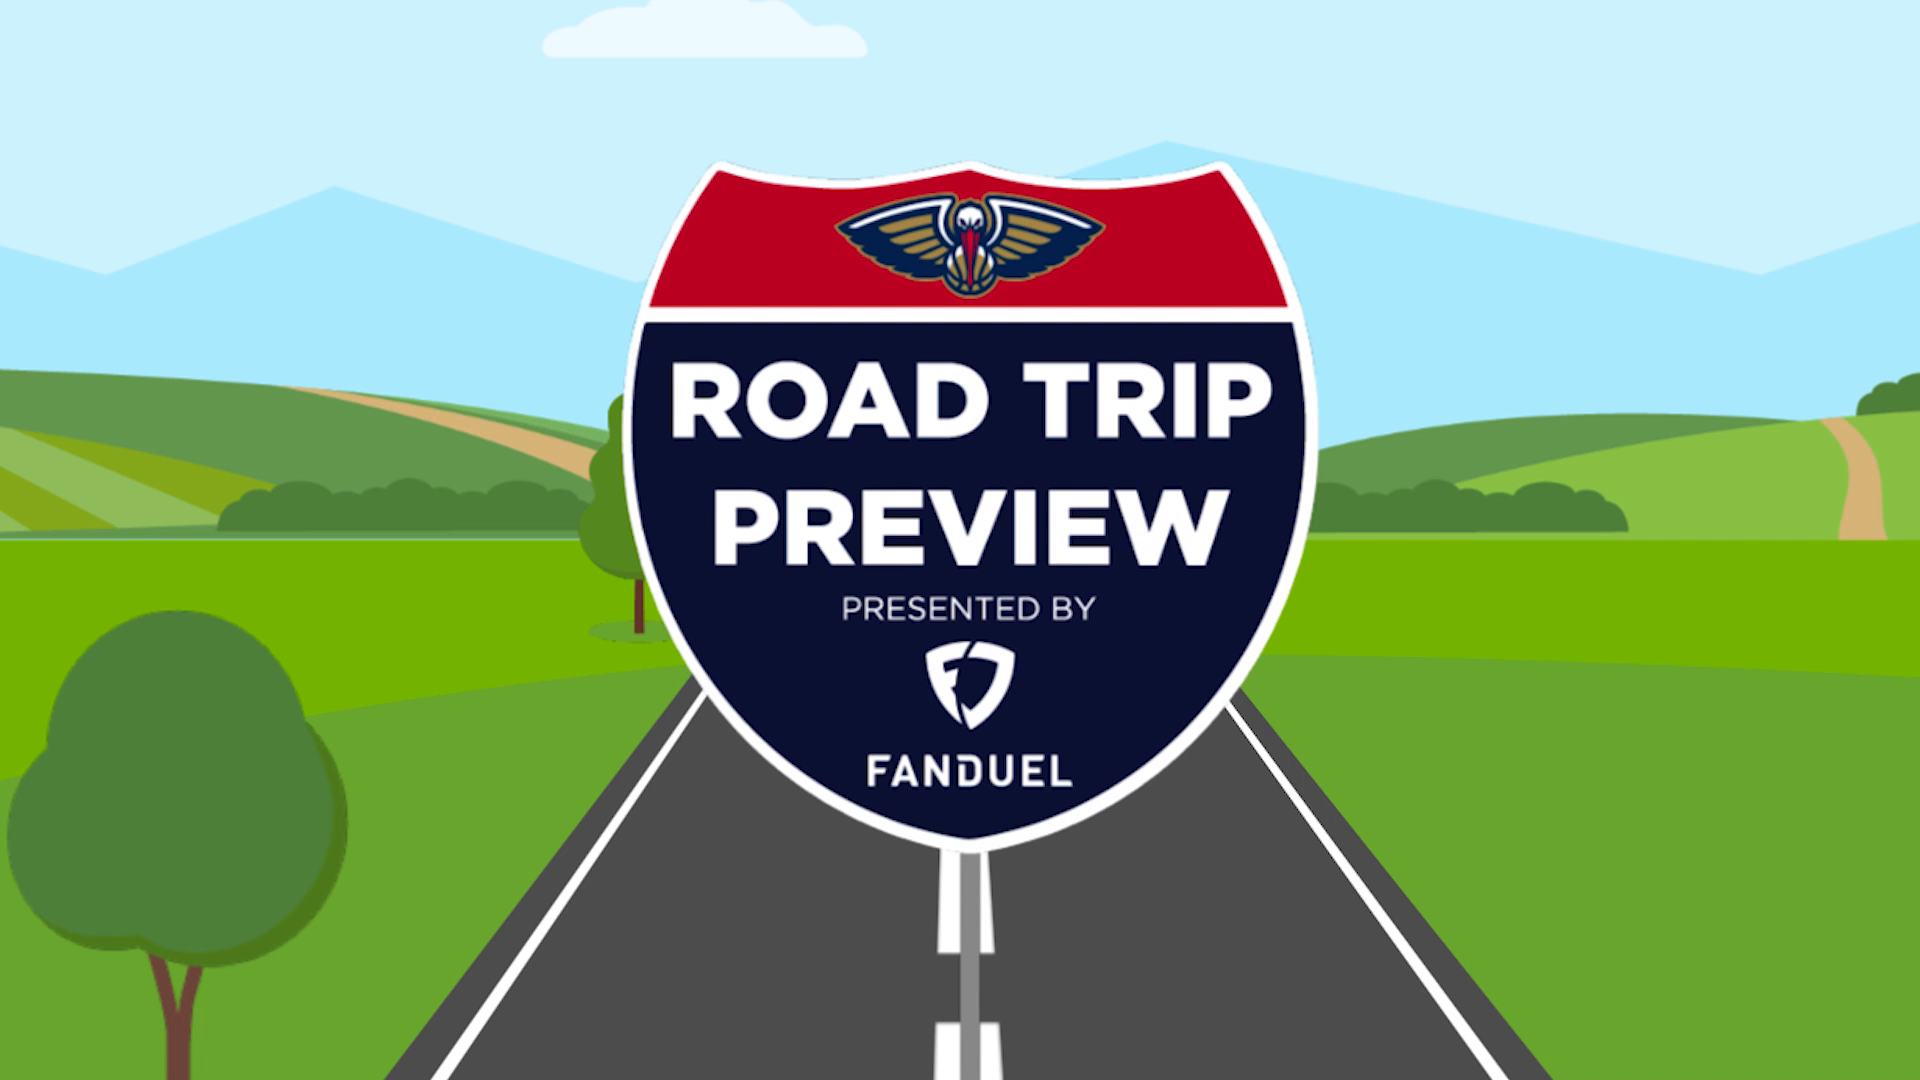 Pelicans Road Trip Preview presented by FanDuel | Philadelphia